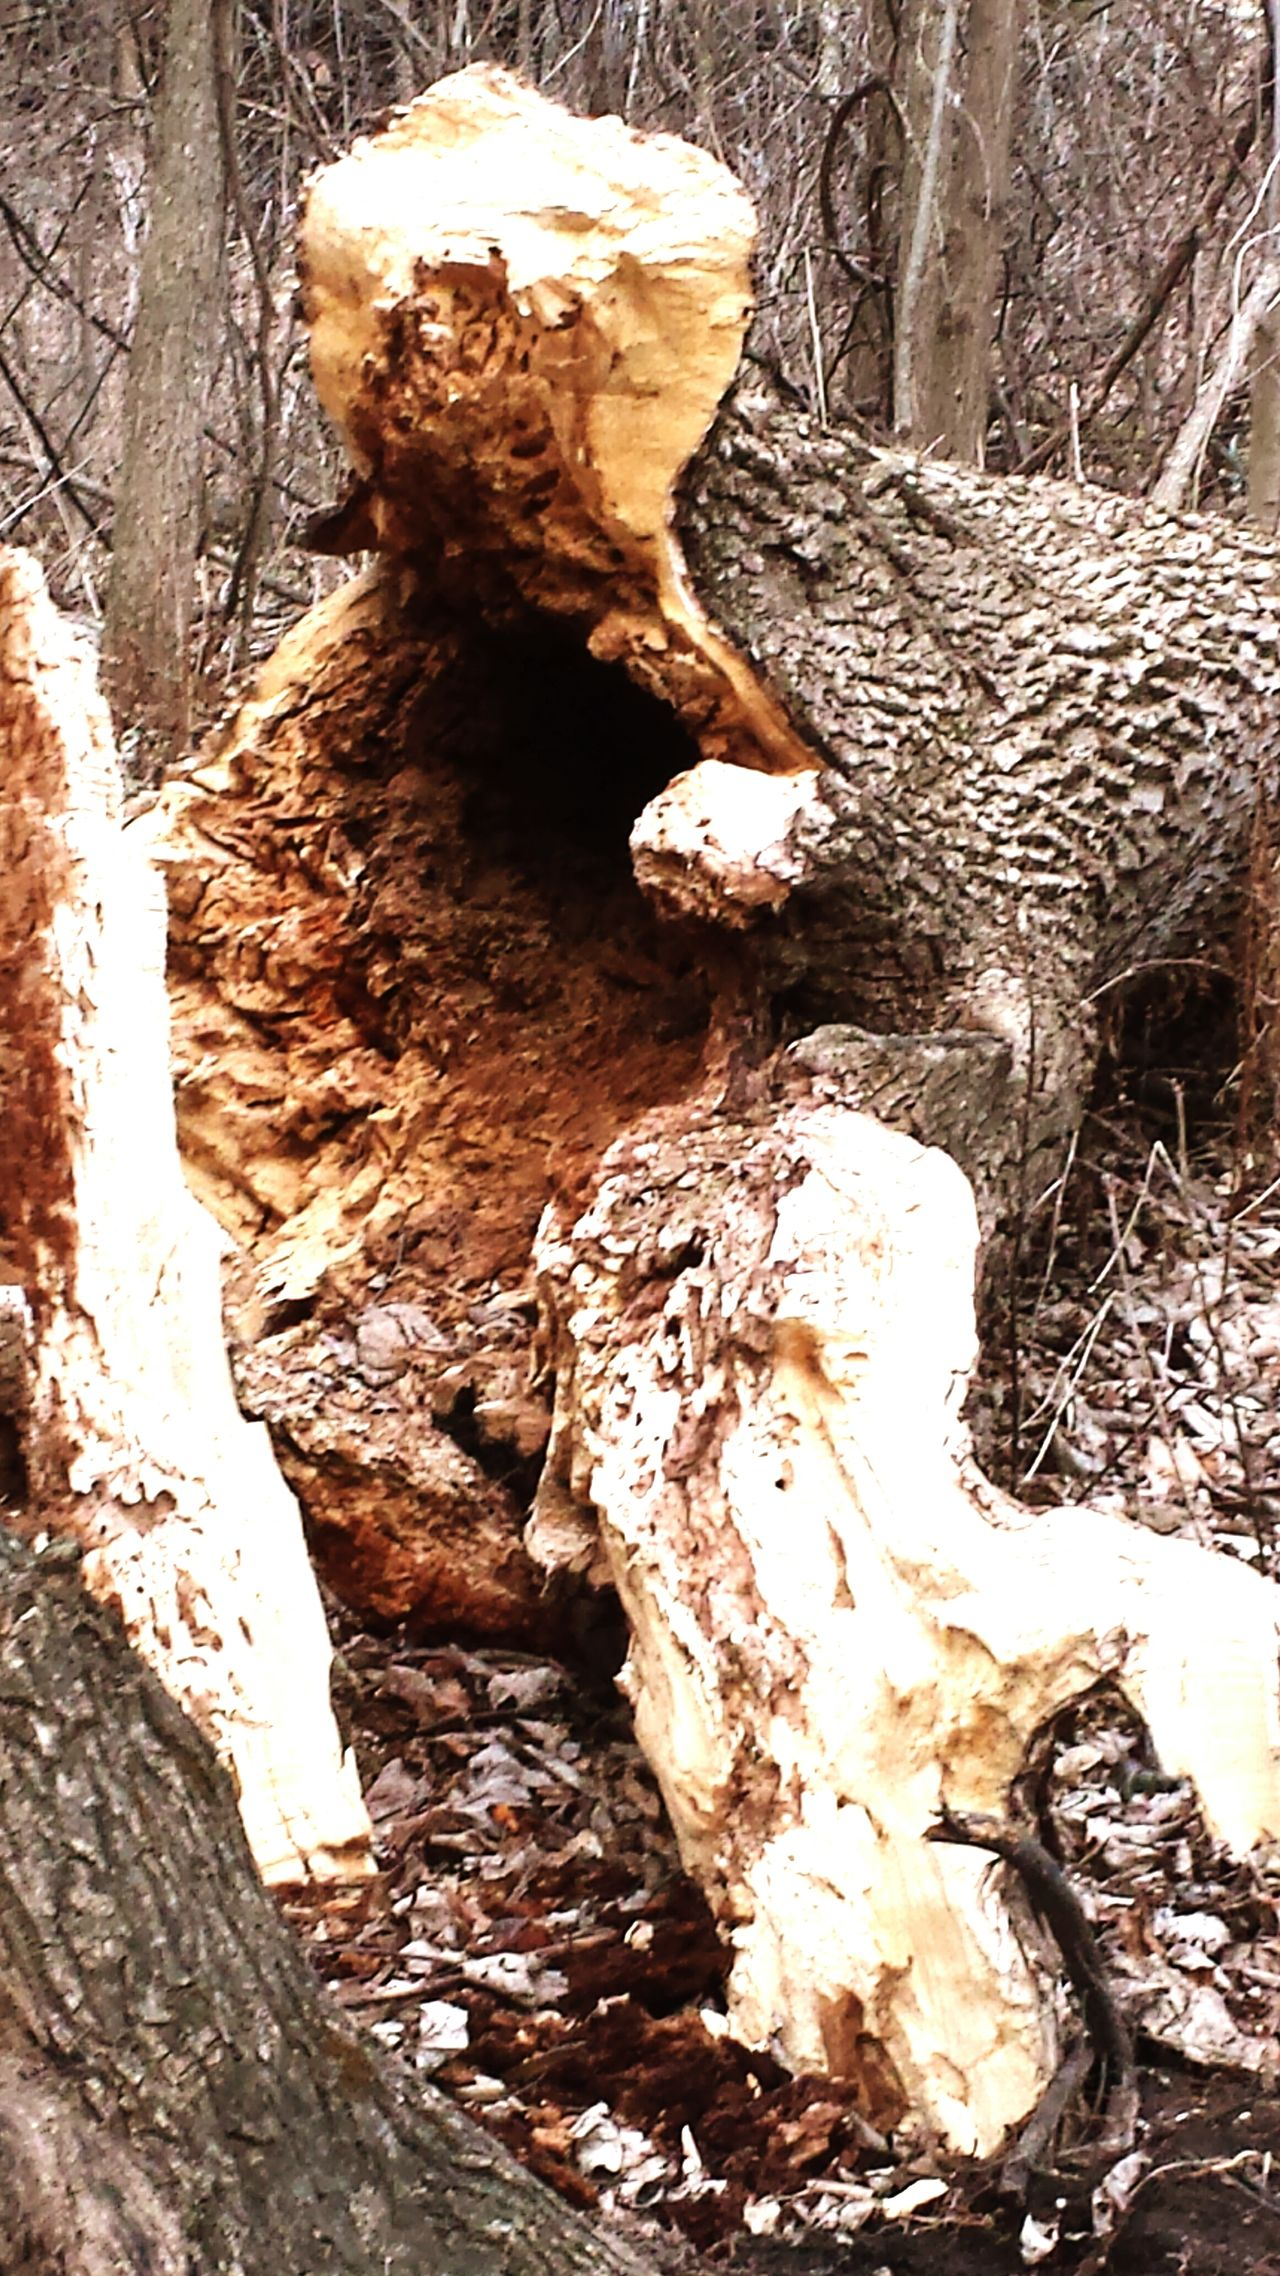 Fallen tree Nature No People Textured  Close-up Day Outdoors Tree Trunk Scenics Beauty In Nature Peace And Quiet Environment Fallen Tree Landscape